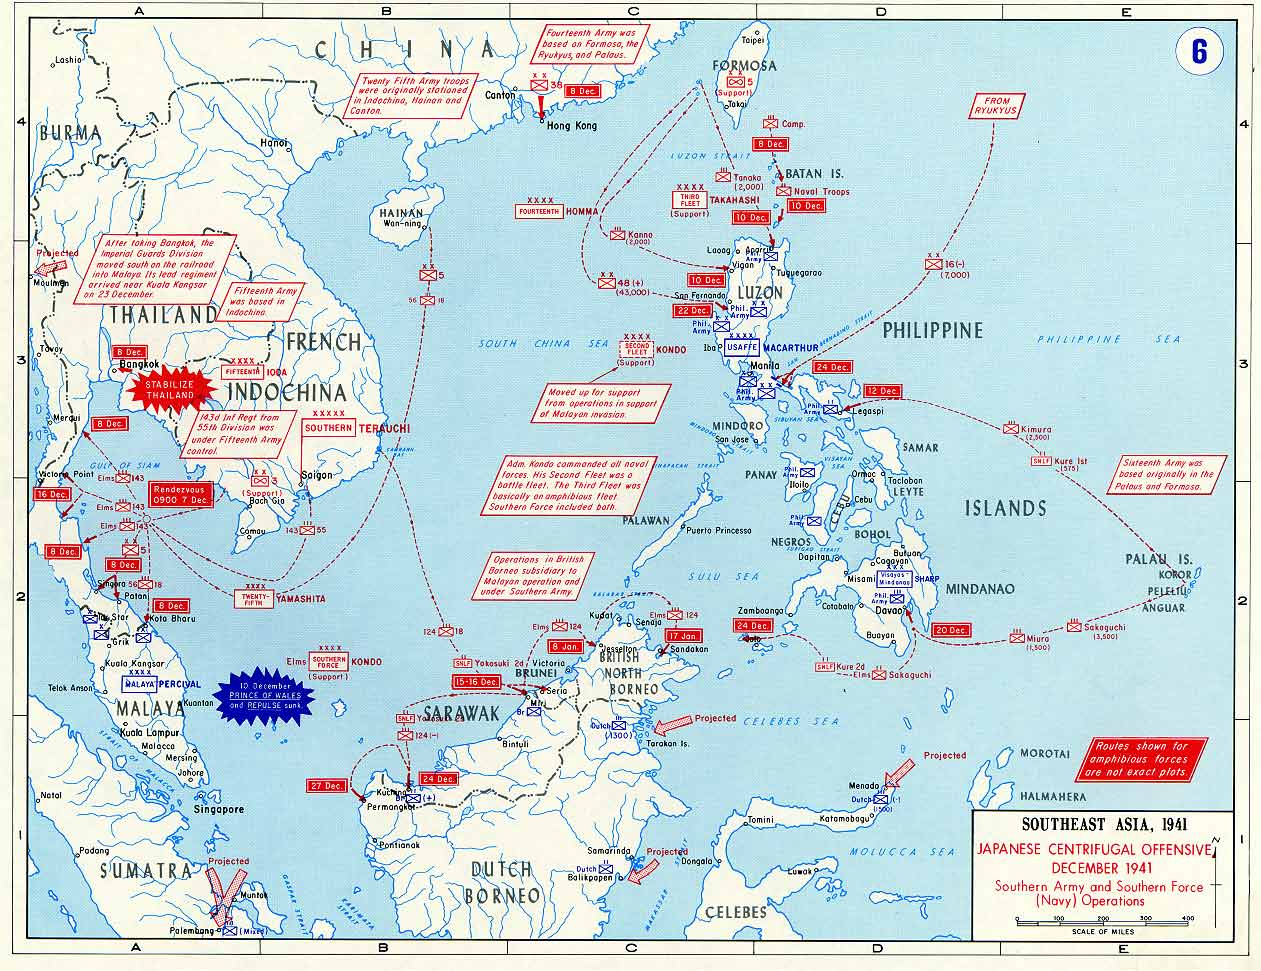 Map Showing Japanese Offensive December